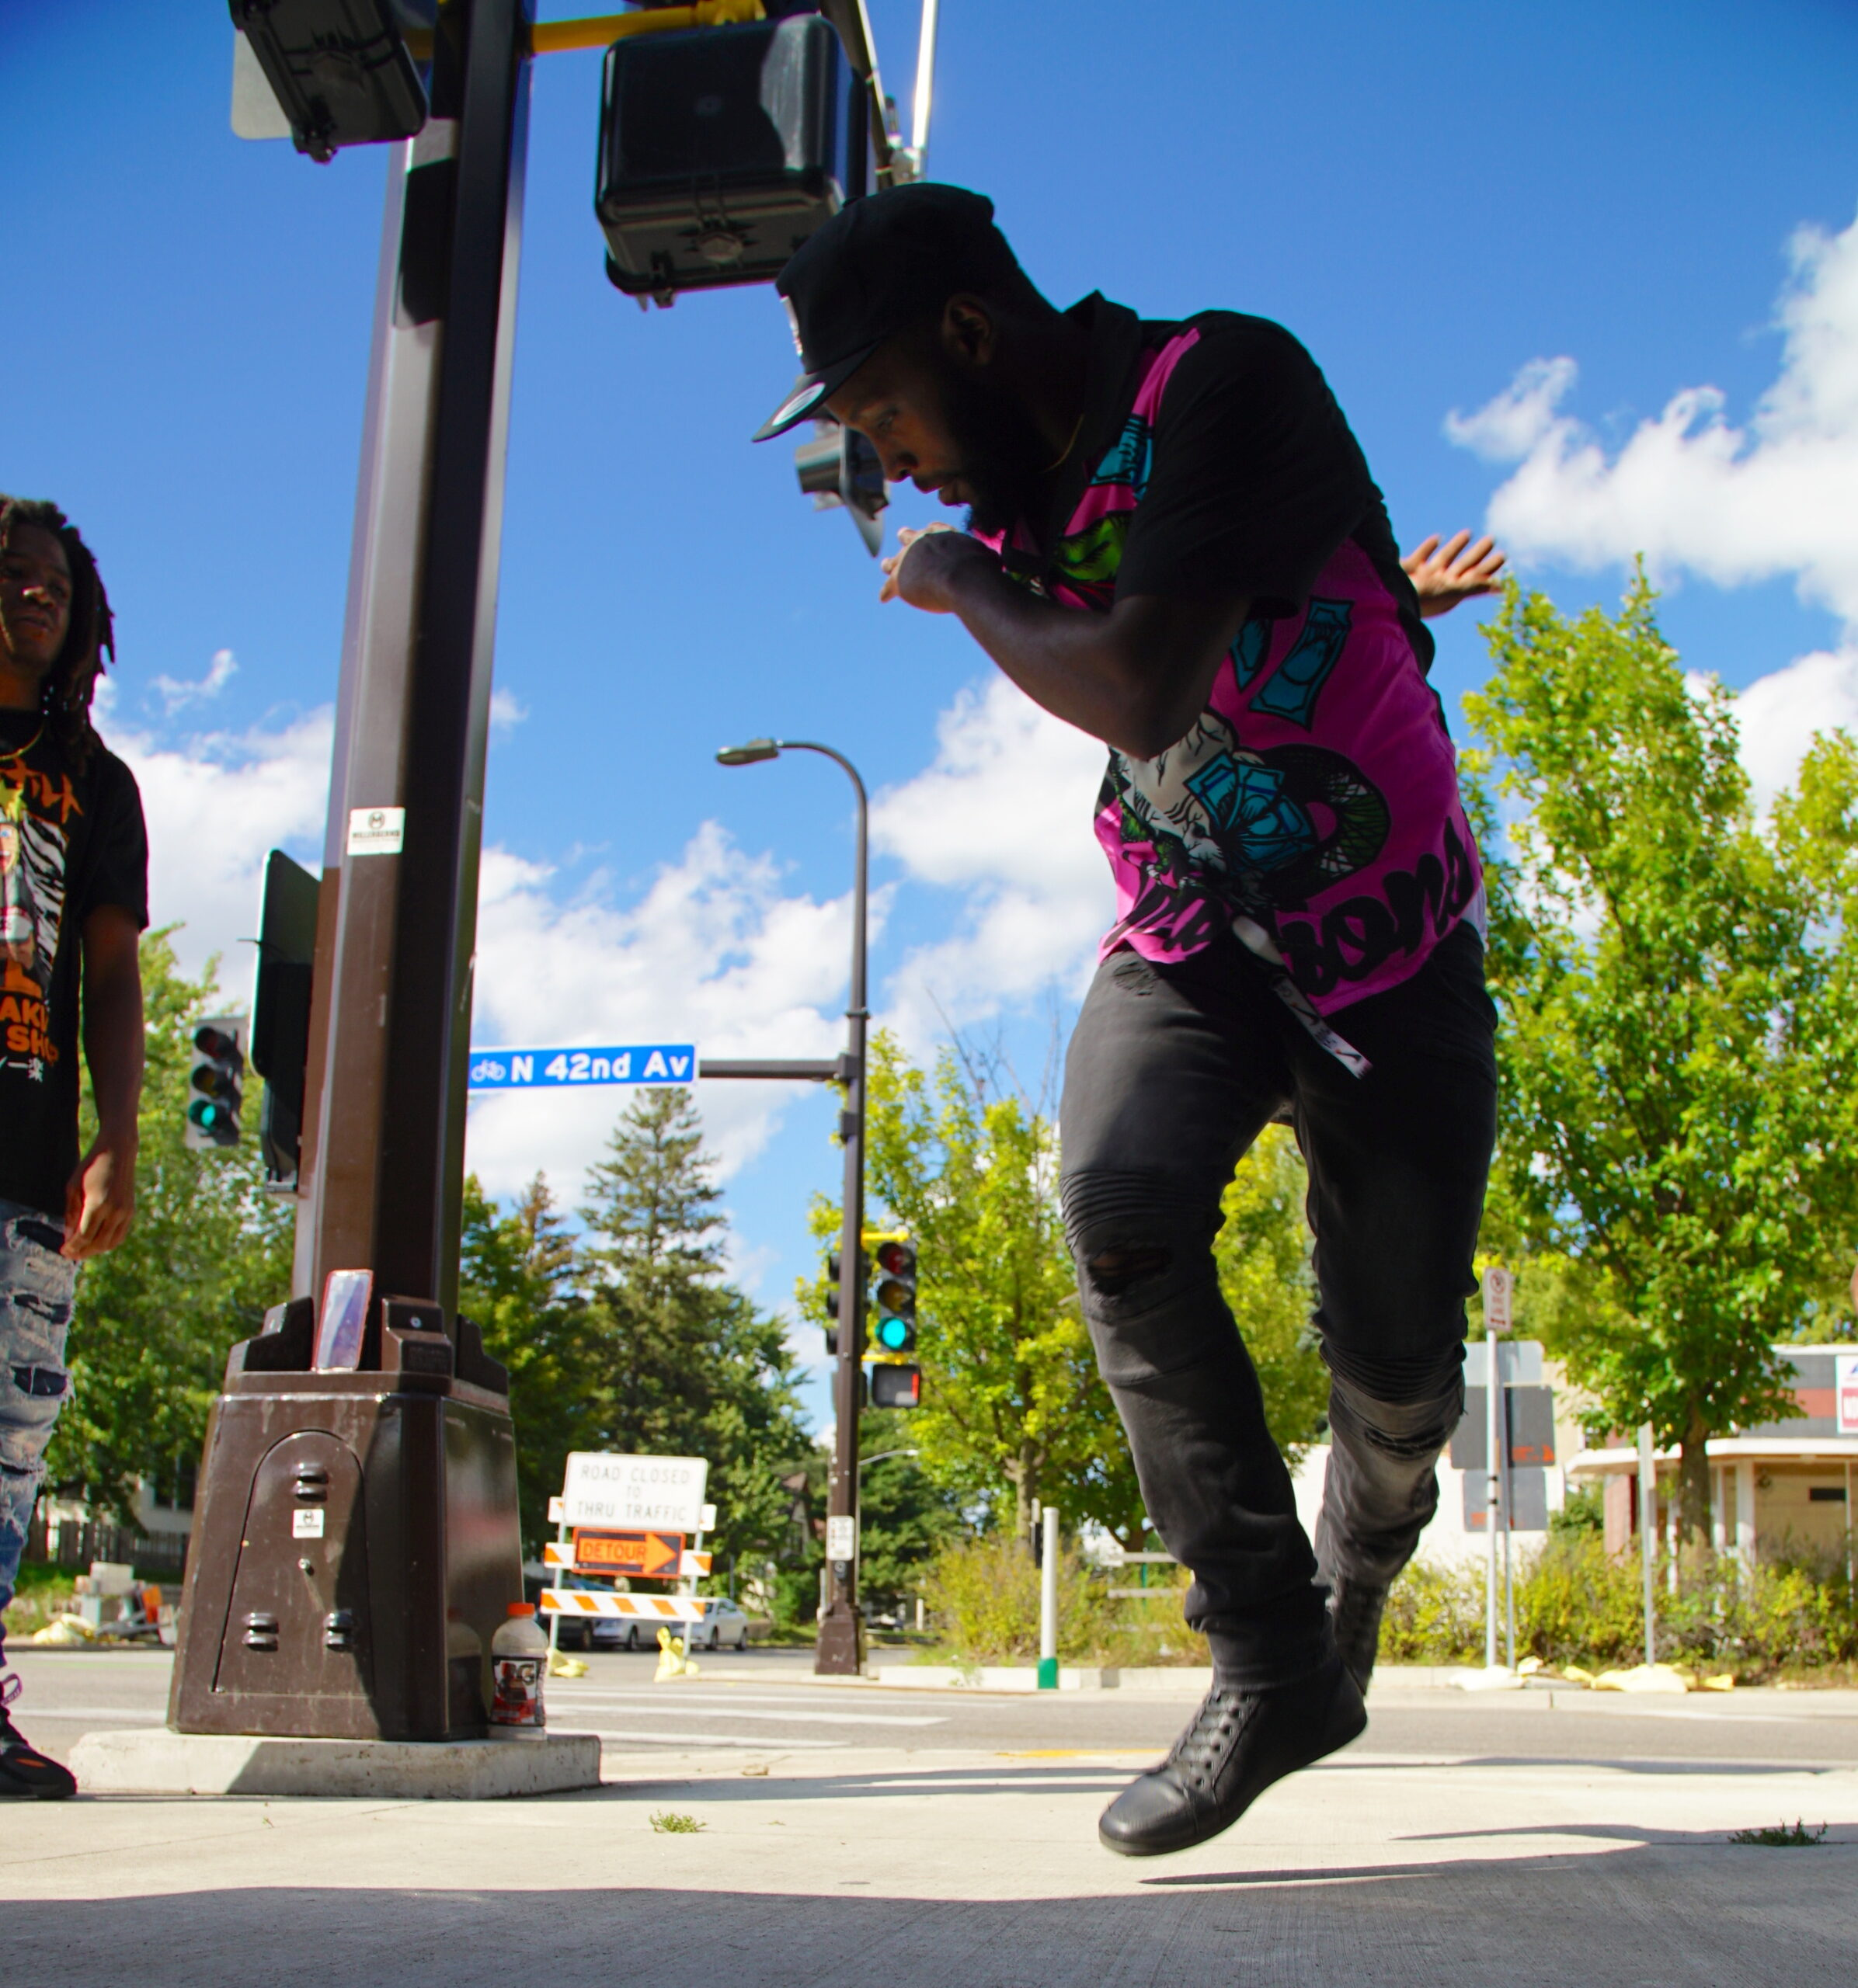 Person dancing on sidewalk, jumping and twisting over their right shoulder, with street signs, trees, and blue sky in background.